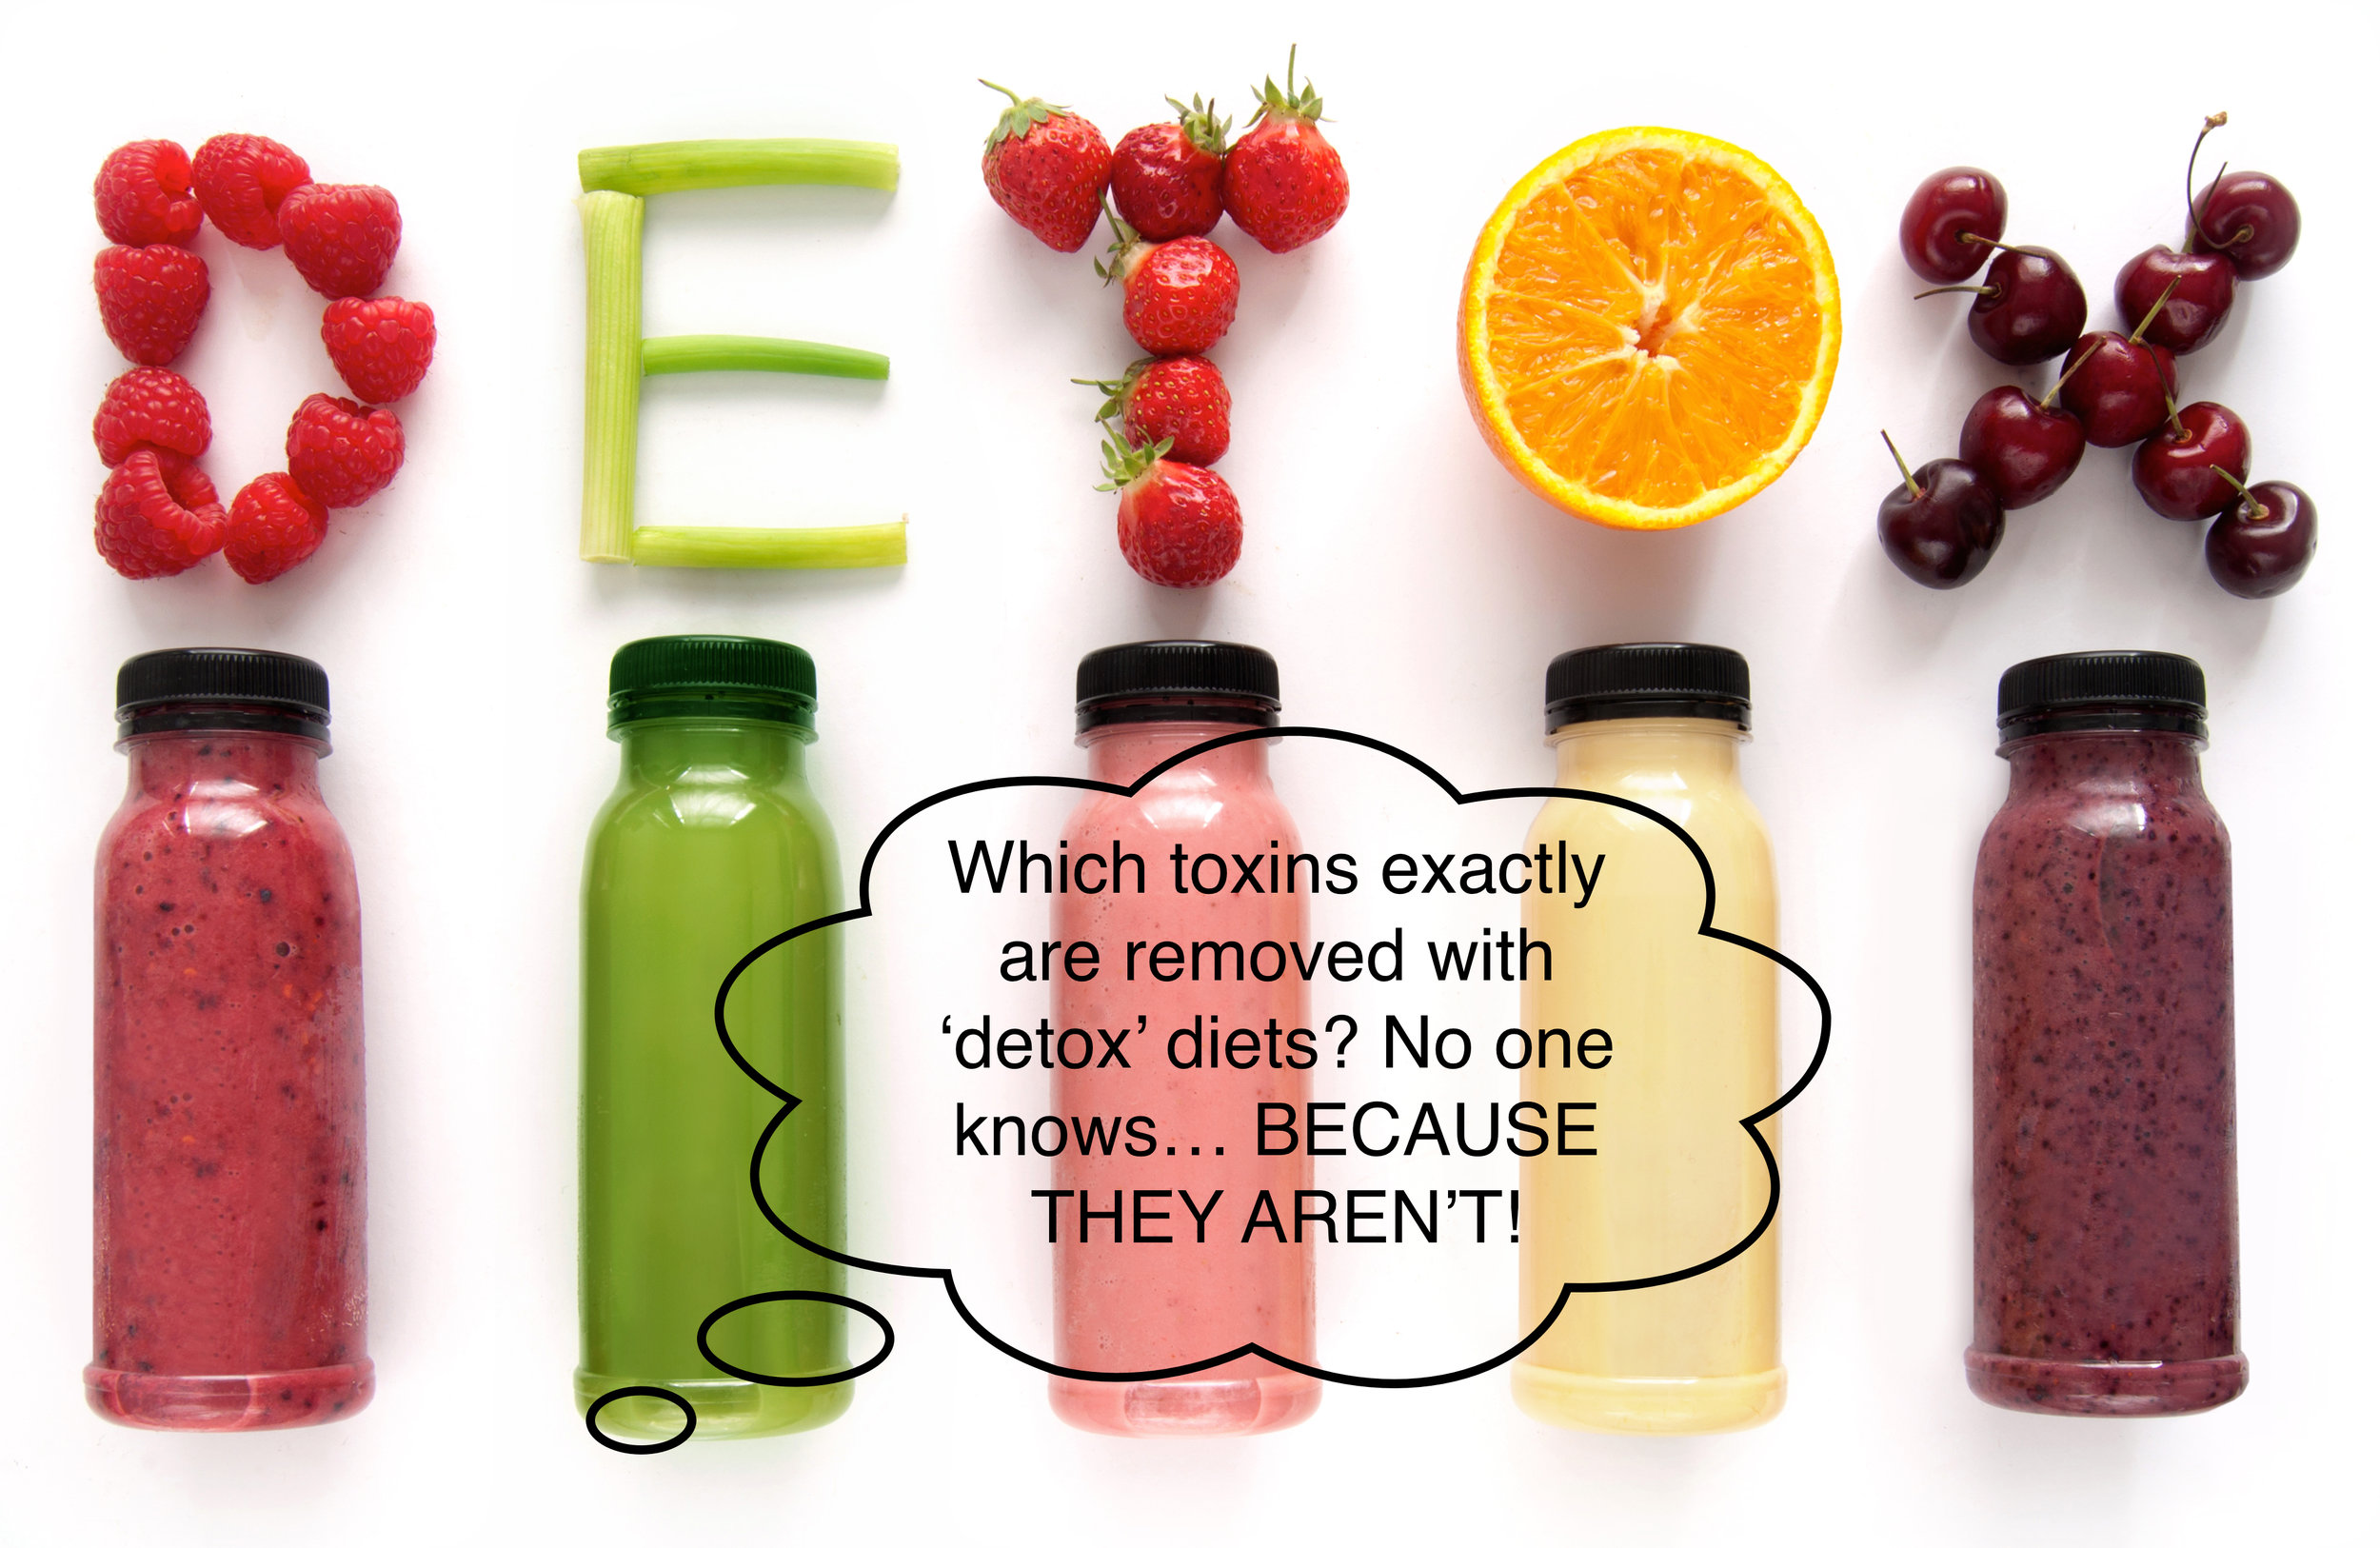 Vegan nutrition - are detox diets actually effective?